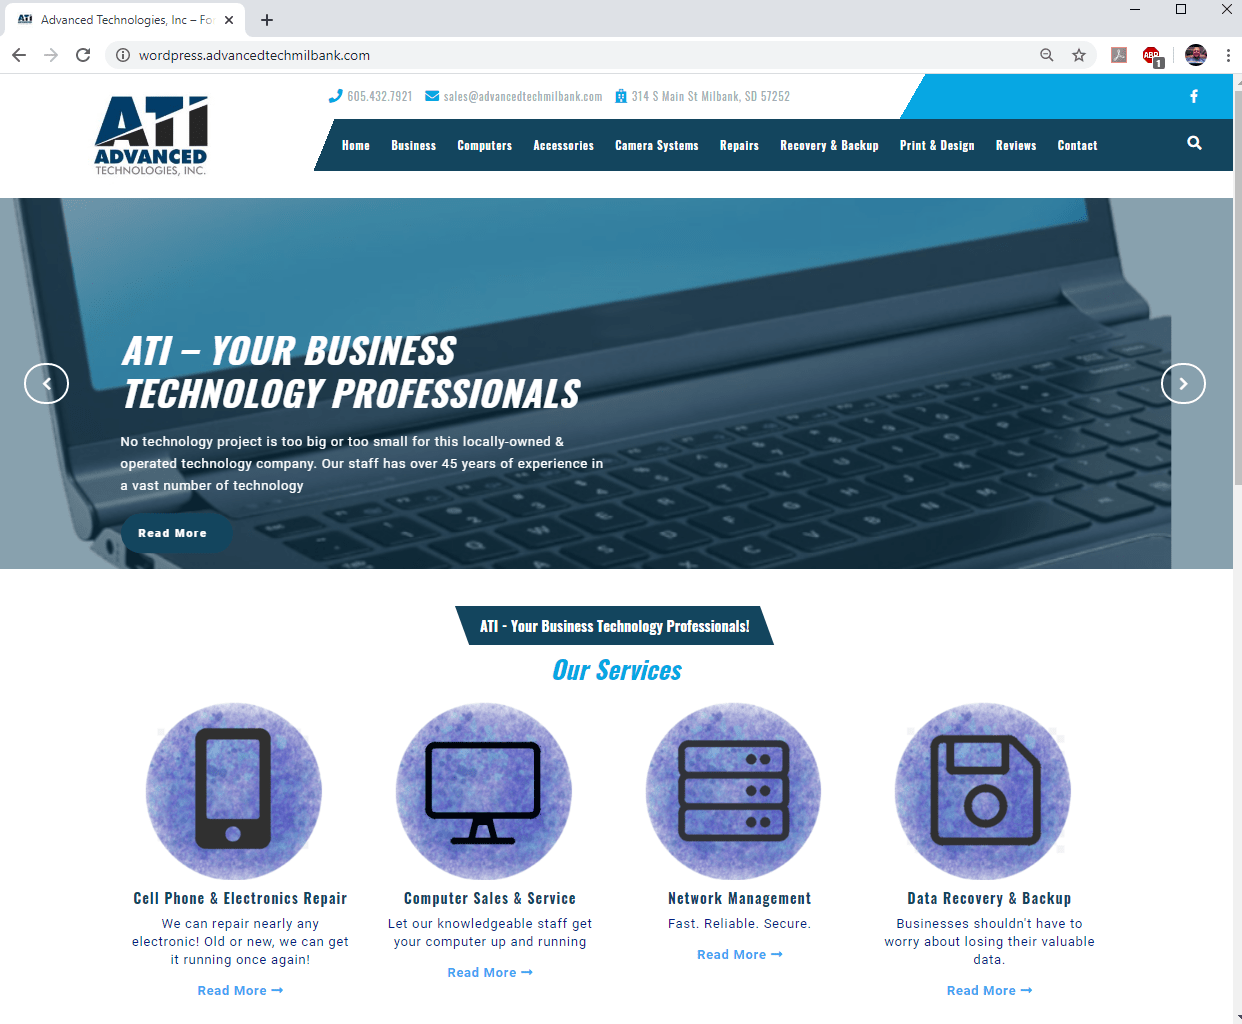 Advanced Technologies, Inc website build